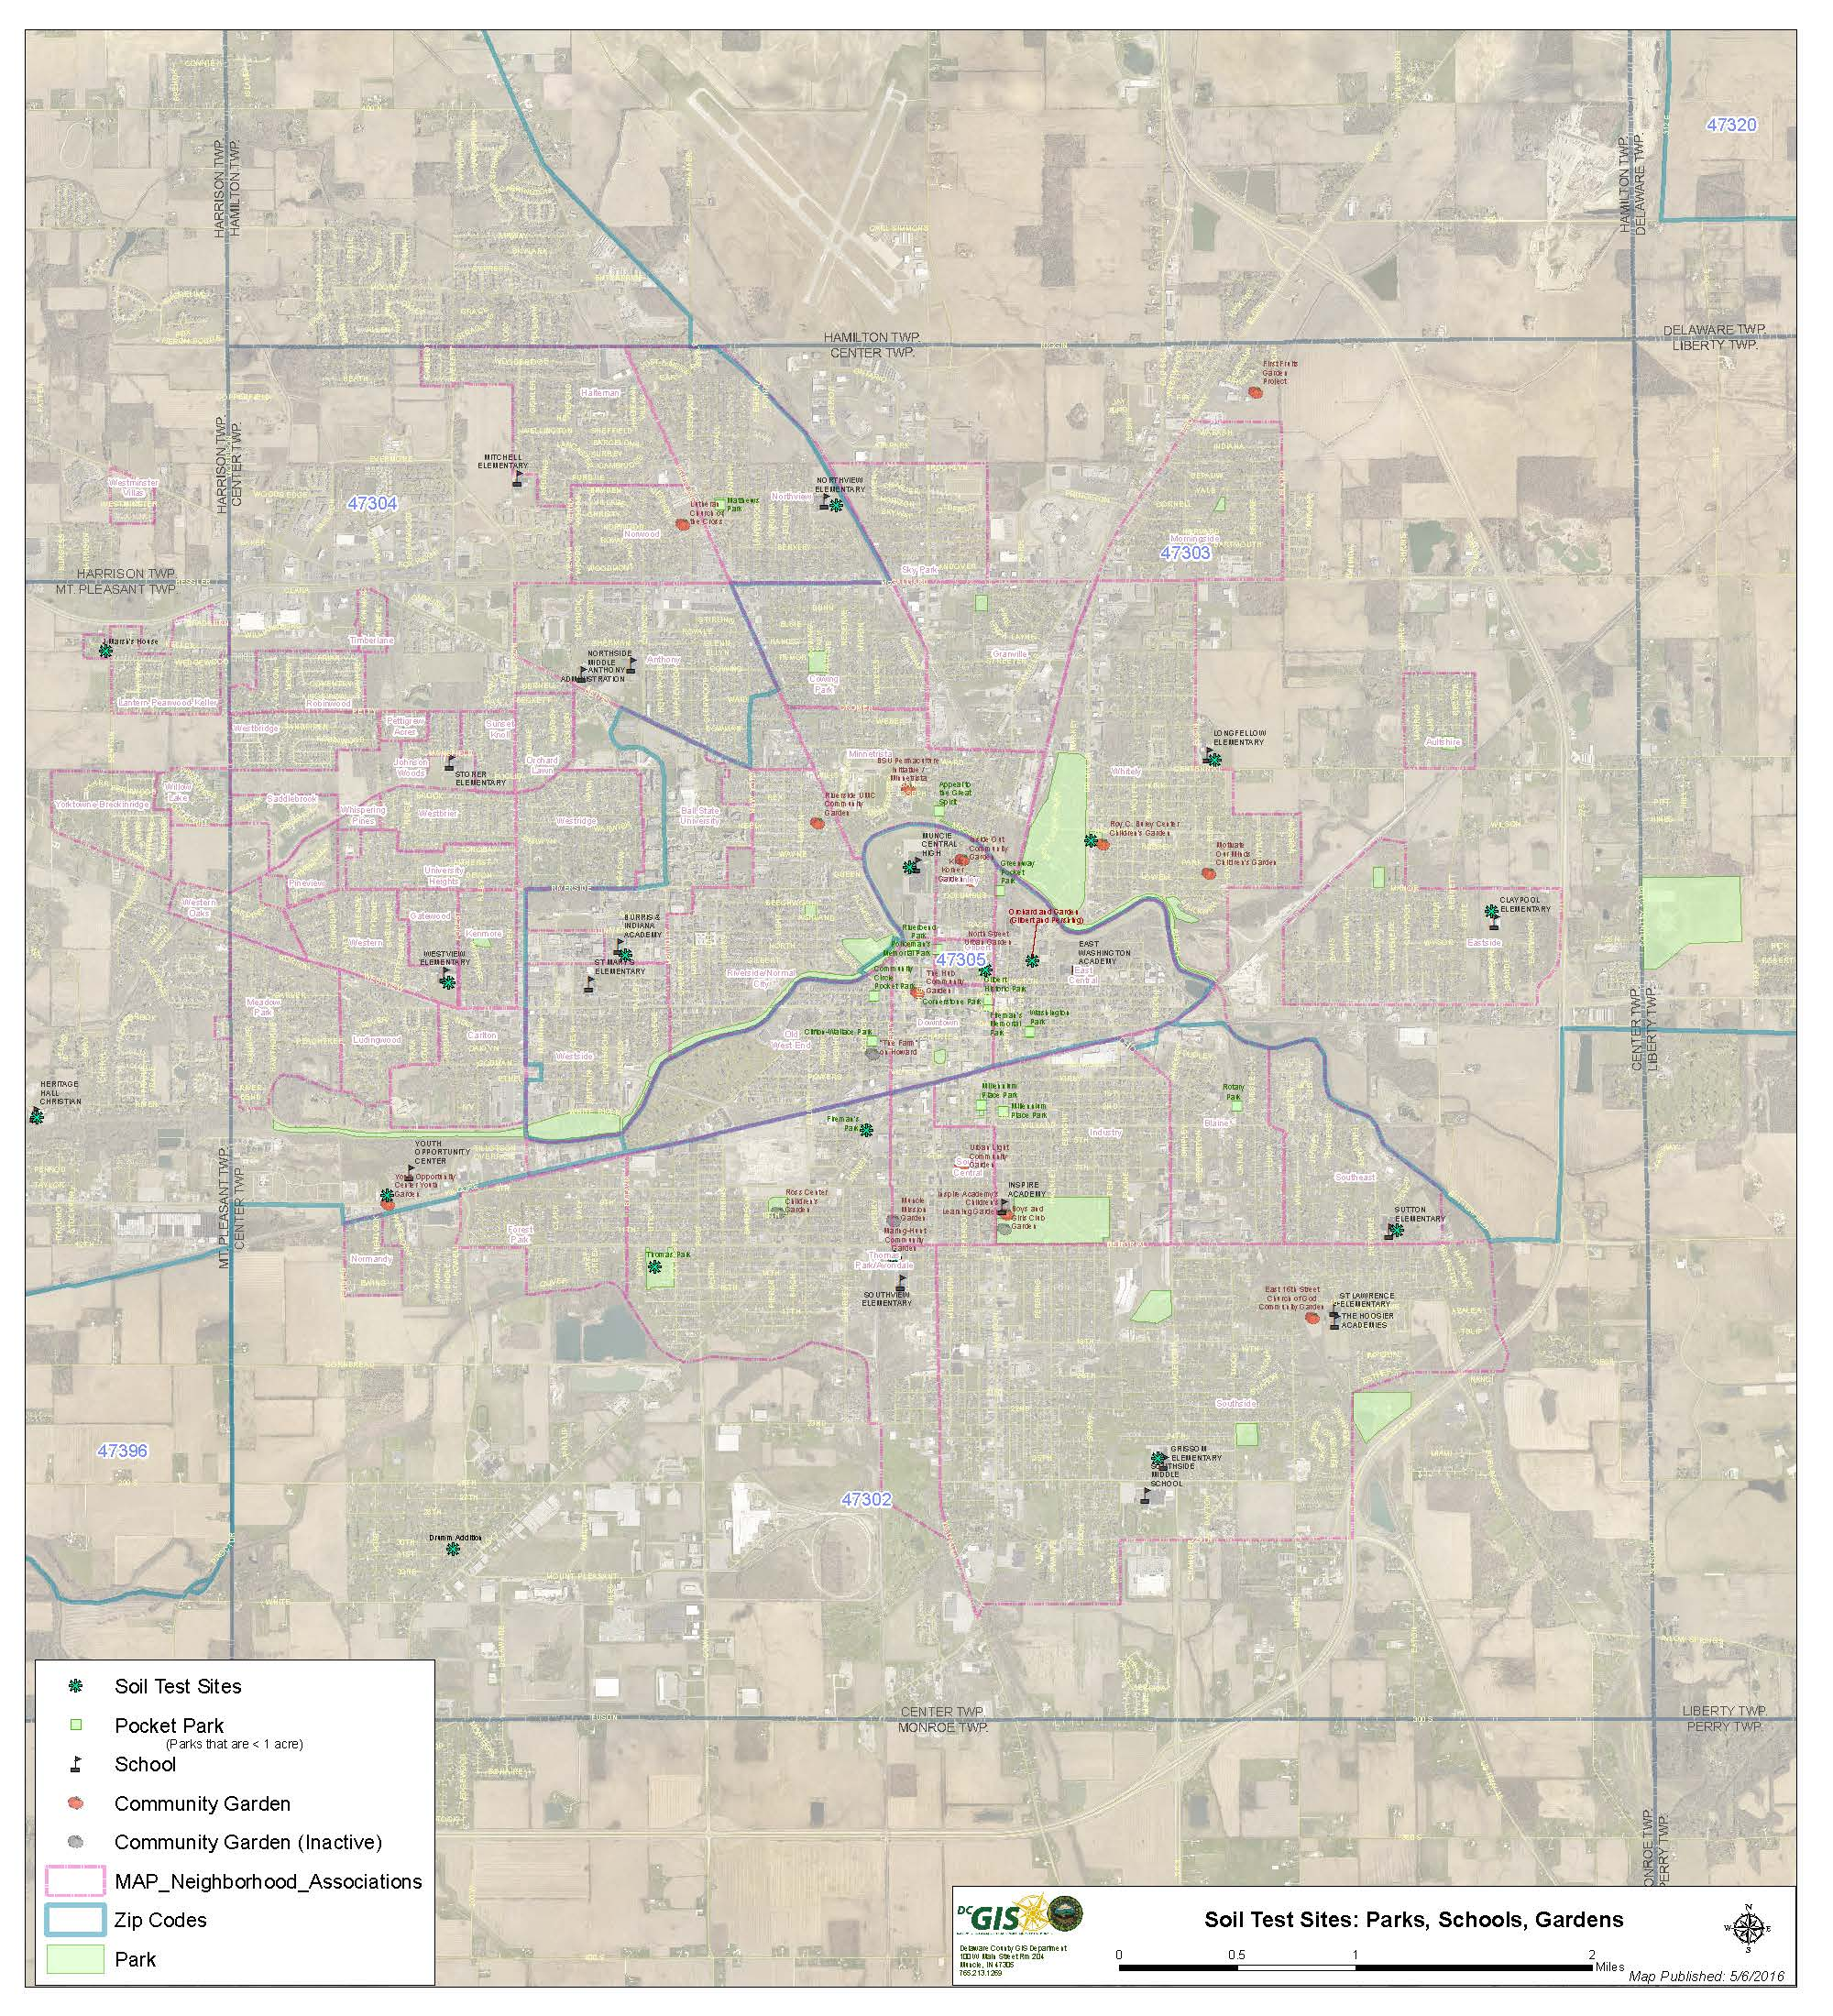 Muncie Zip Code Map.Muncie Action Plan Map Newsletter Summer 2016 Muncie Journal